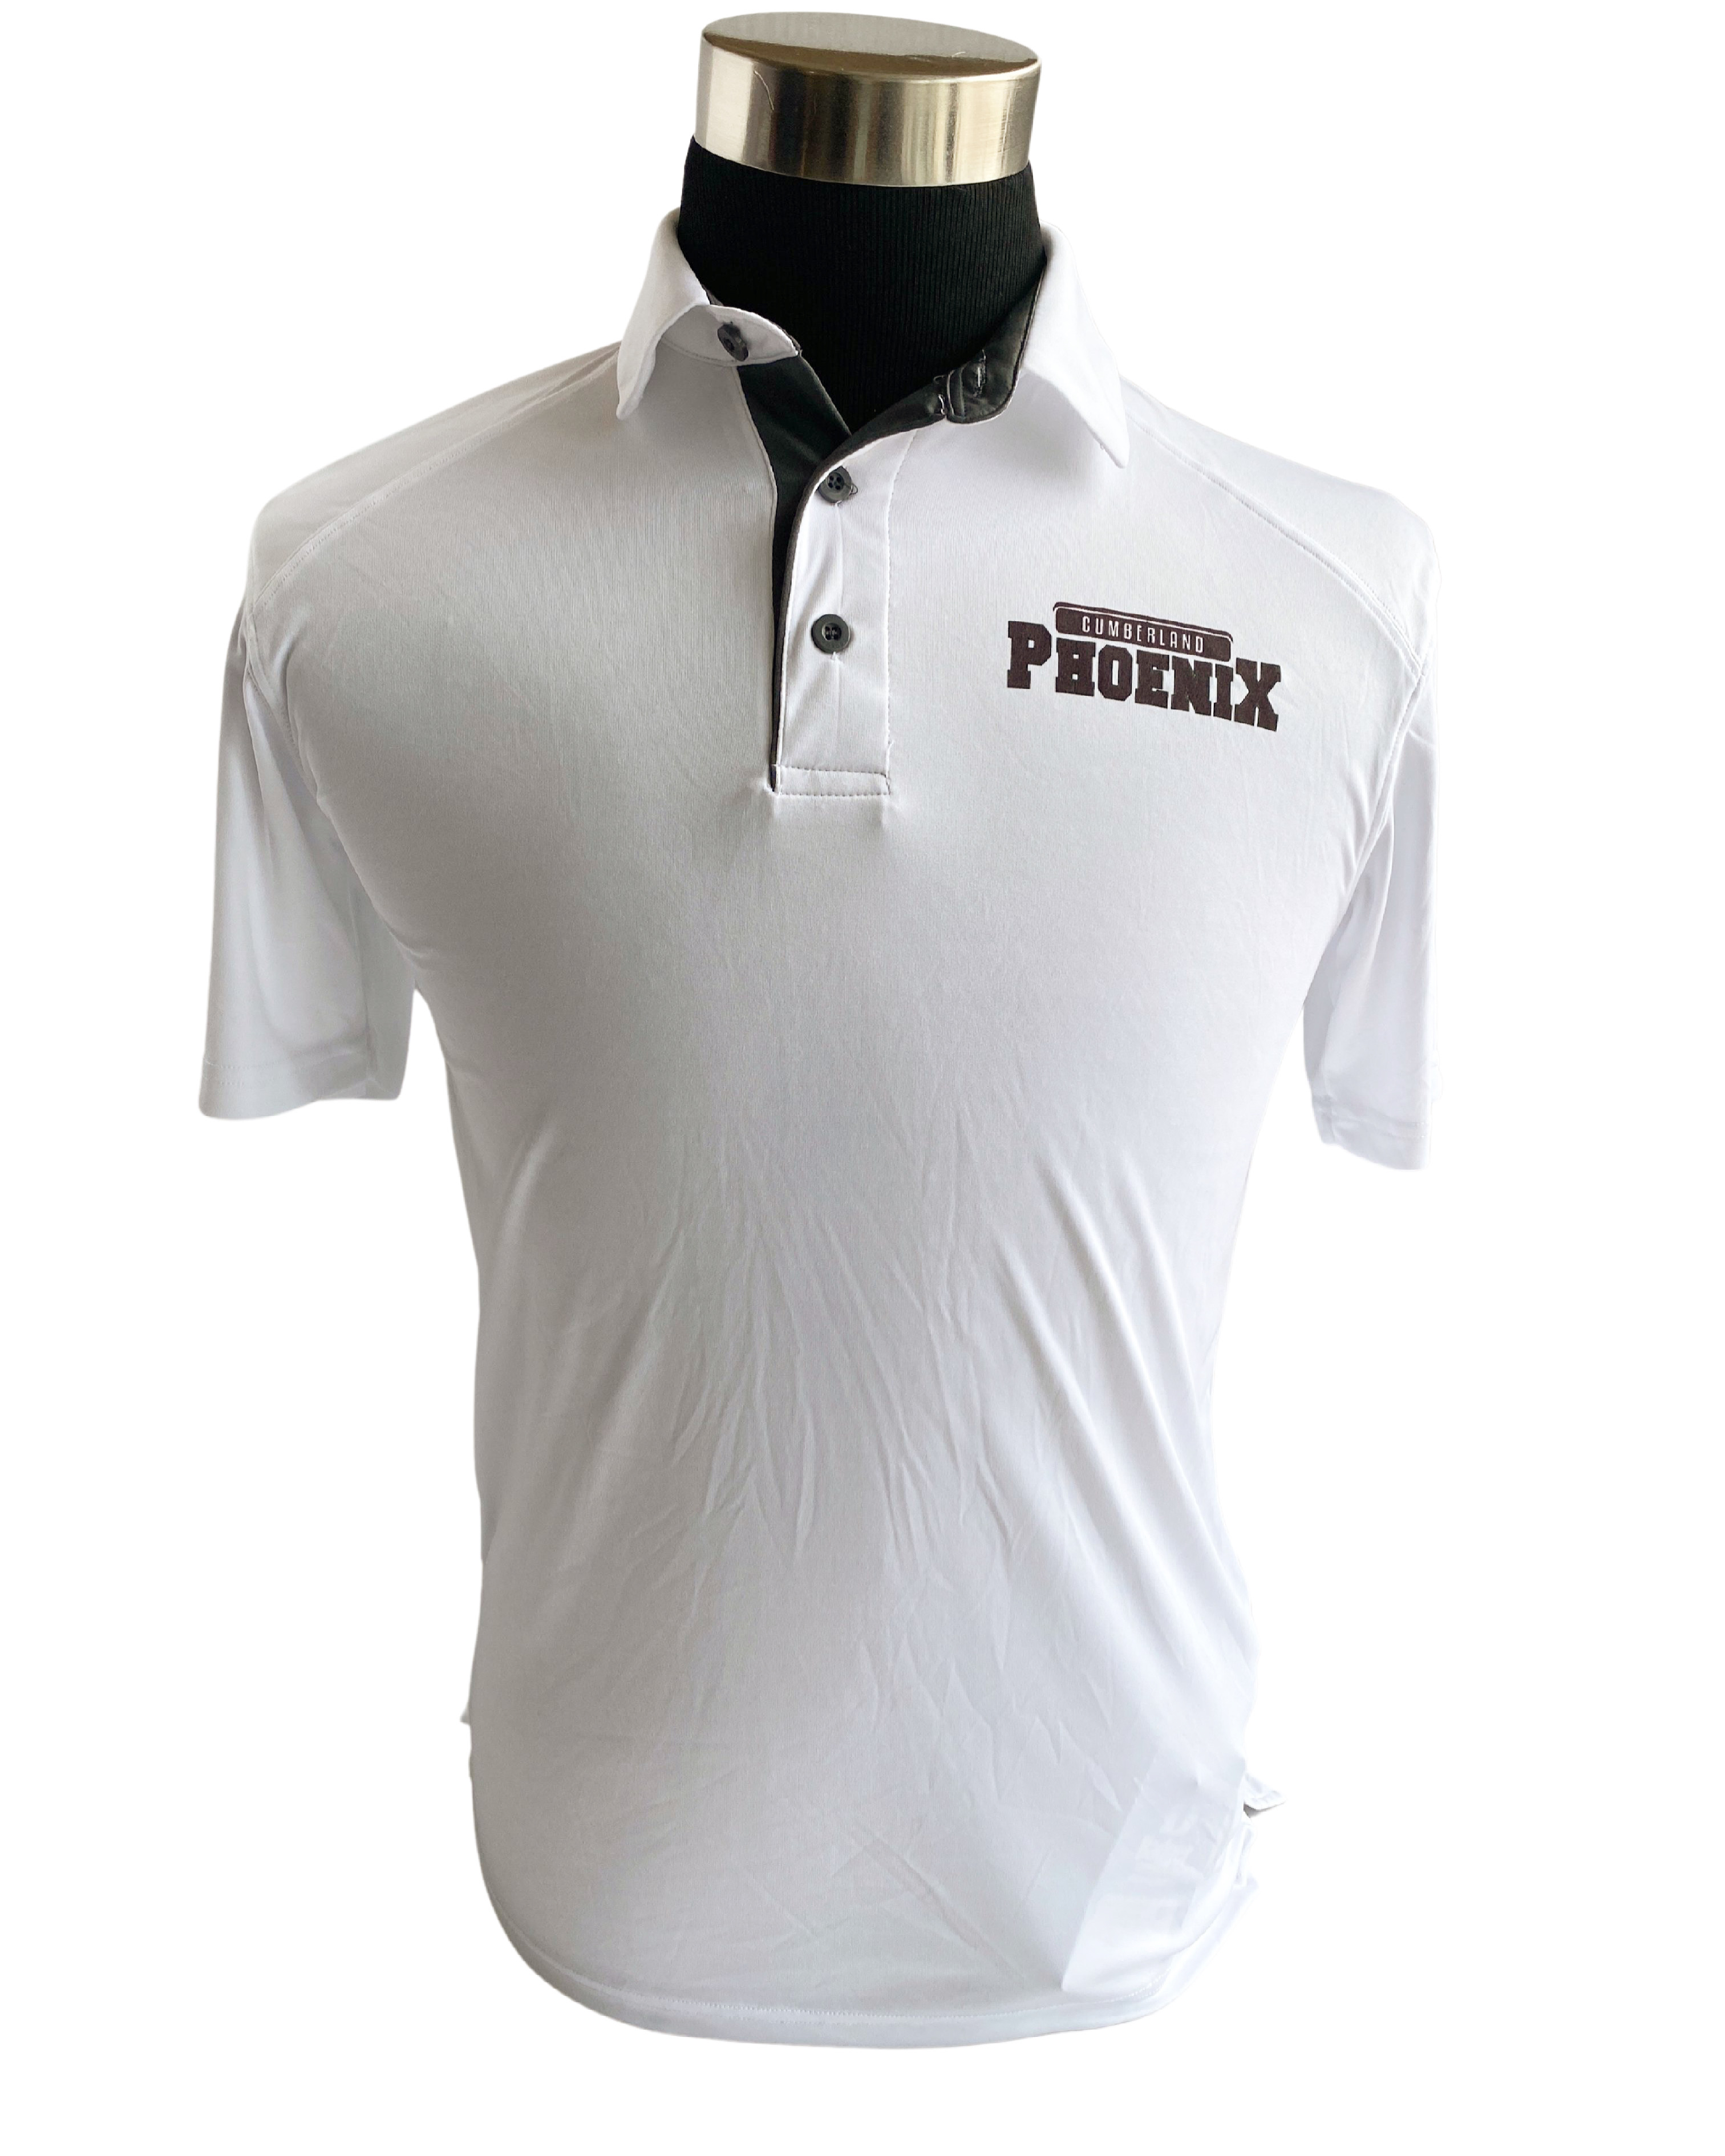 Cumberland Phoenix Ultimate Polo